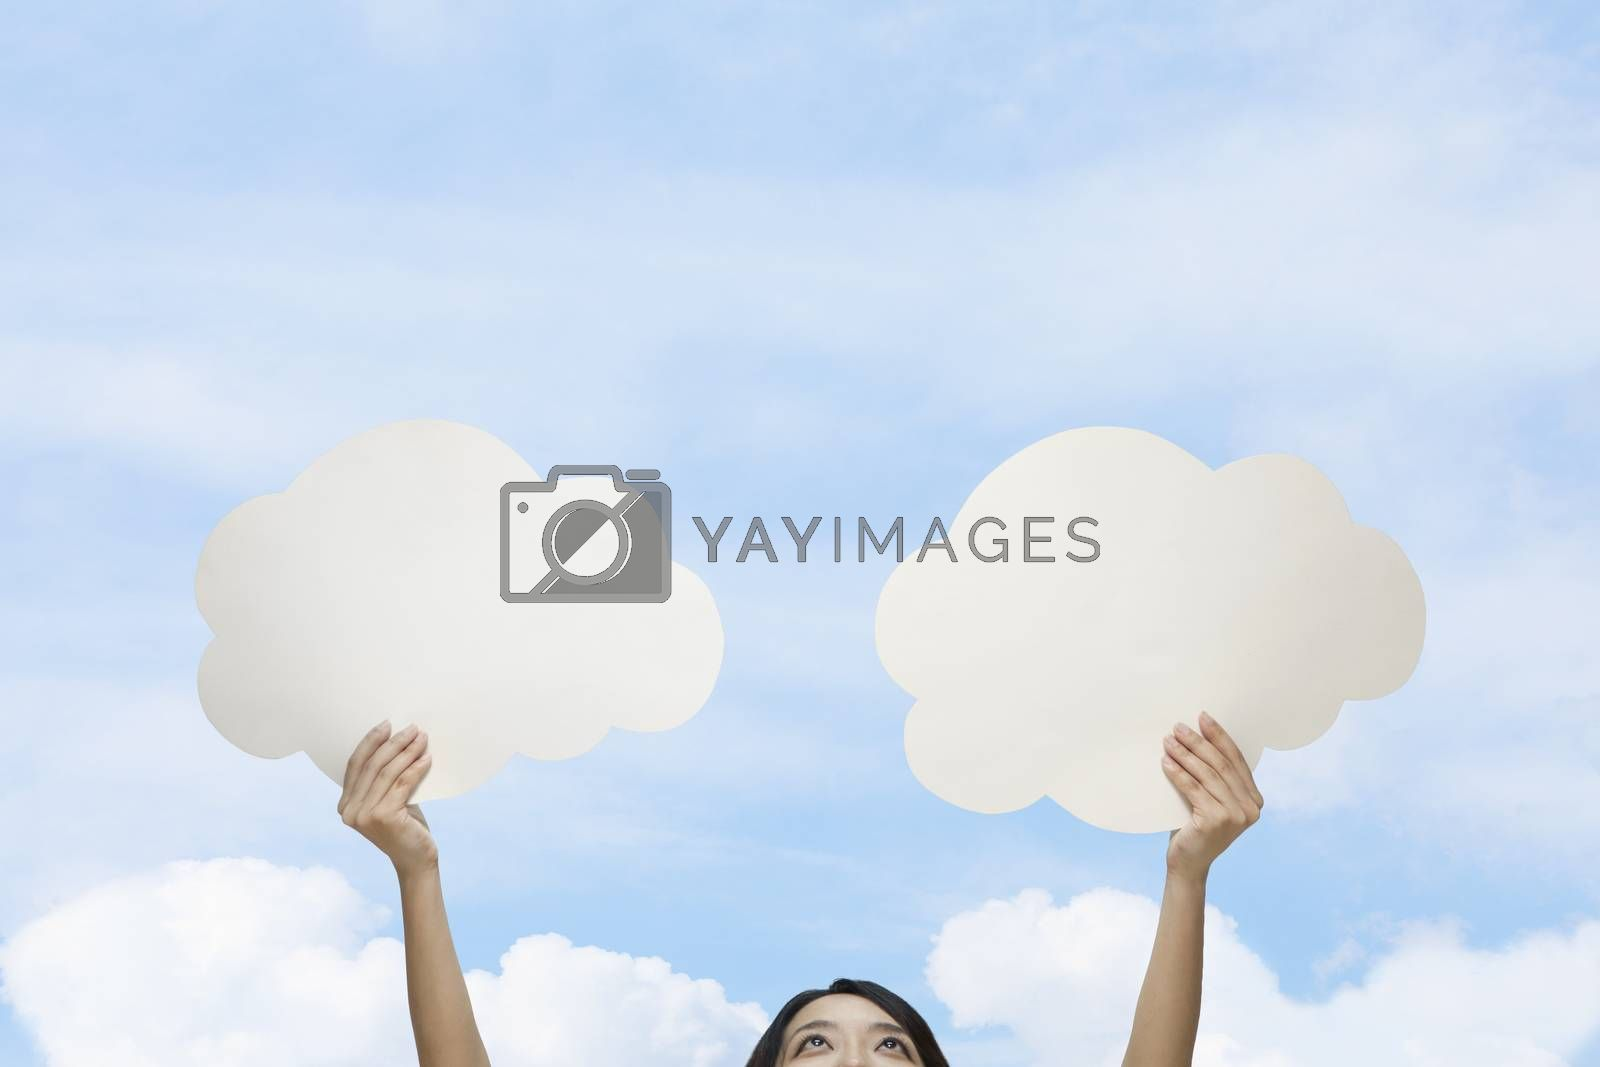 Young woman holding two cut out paper clouds against a blue sky with clouds by XiXinXing